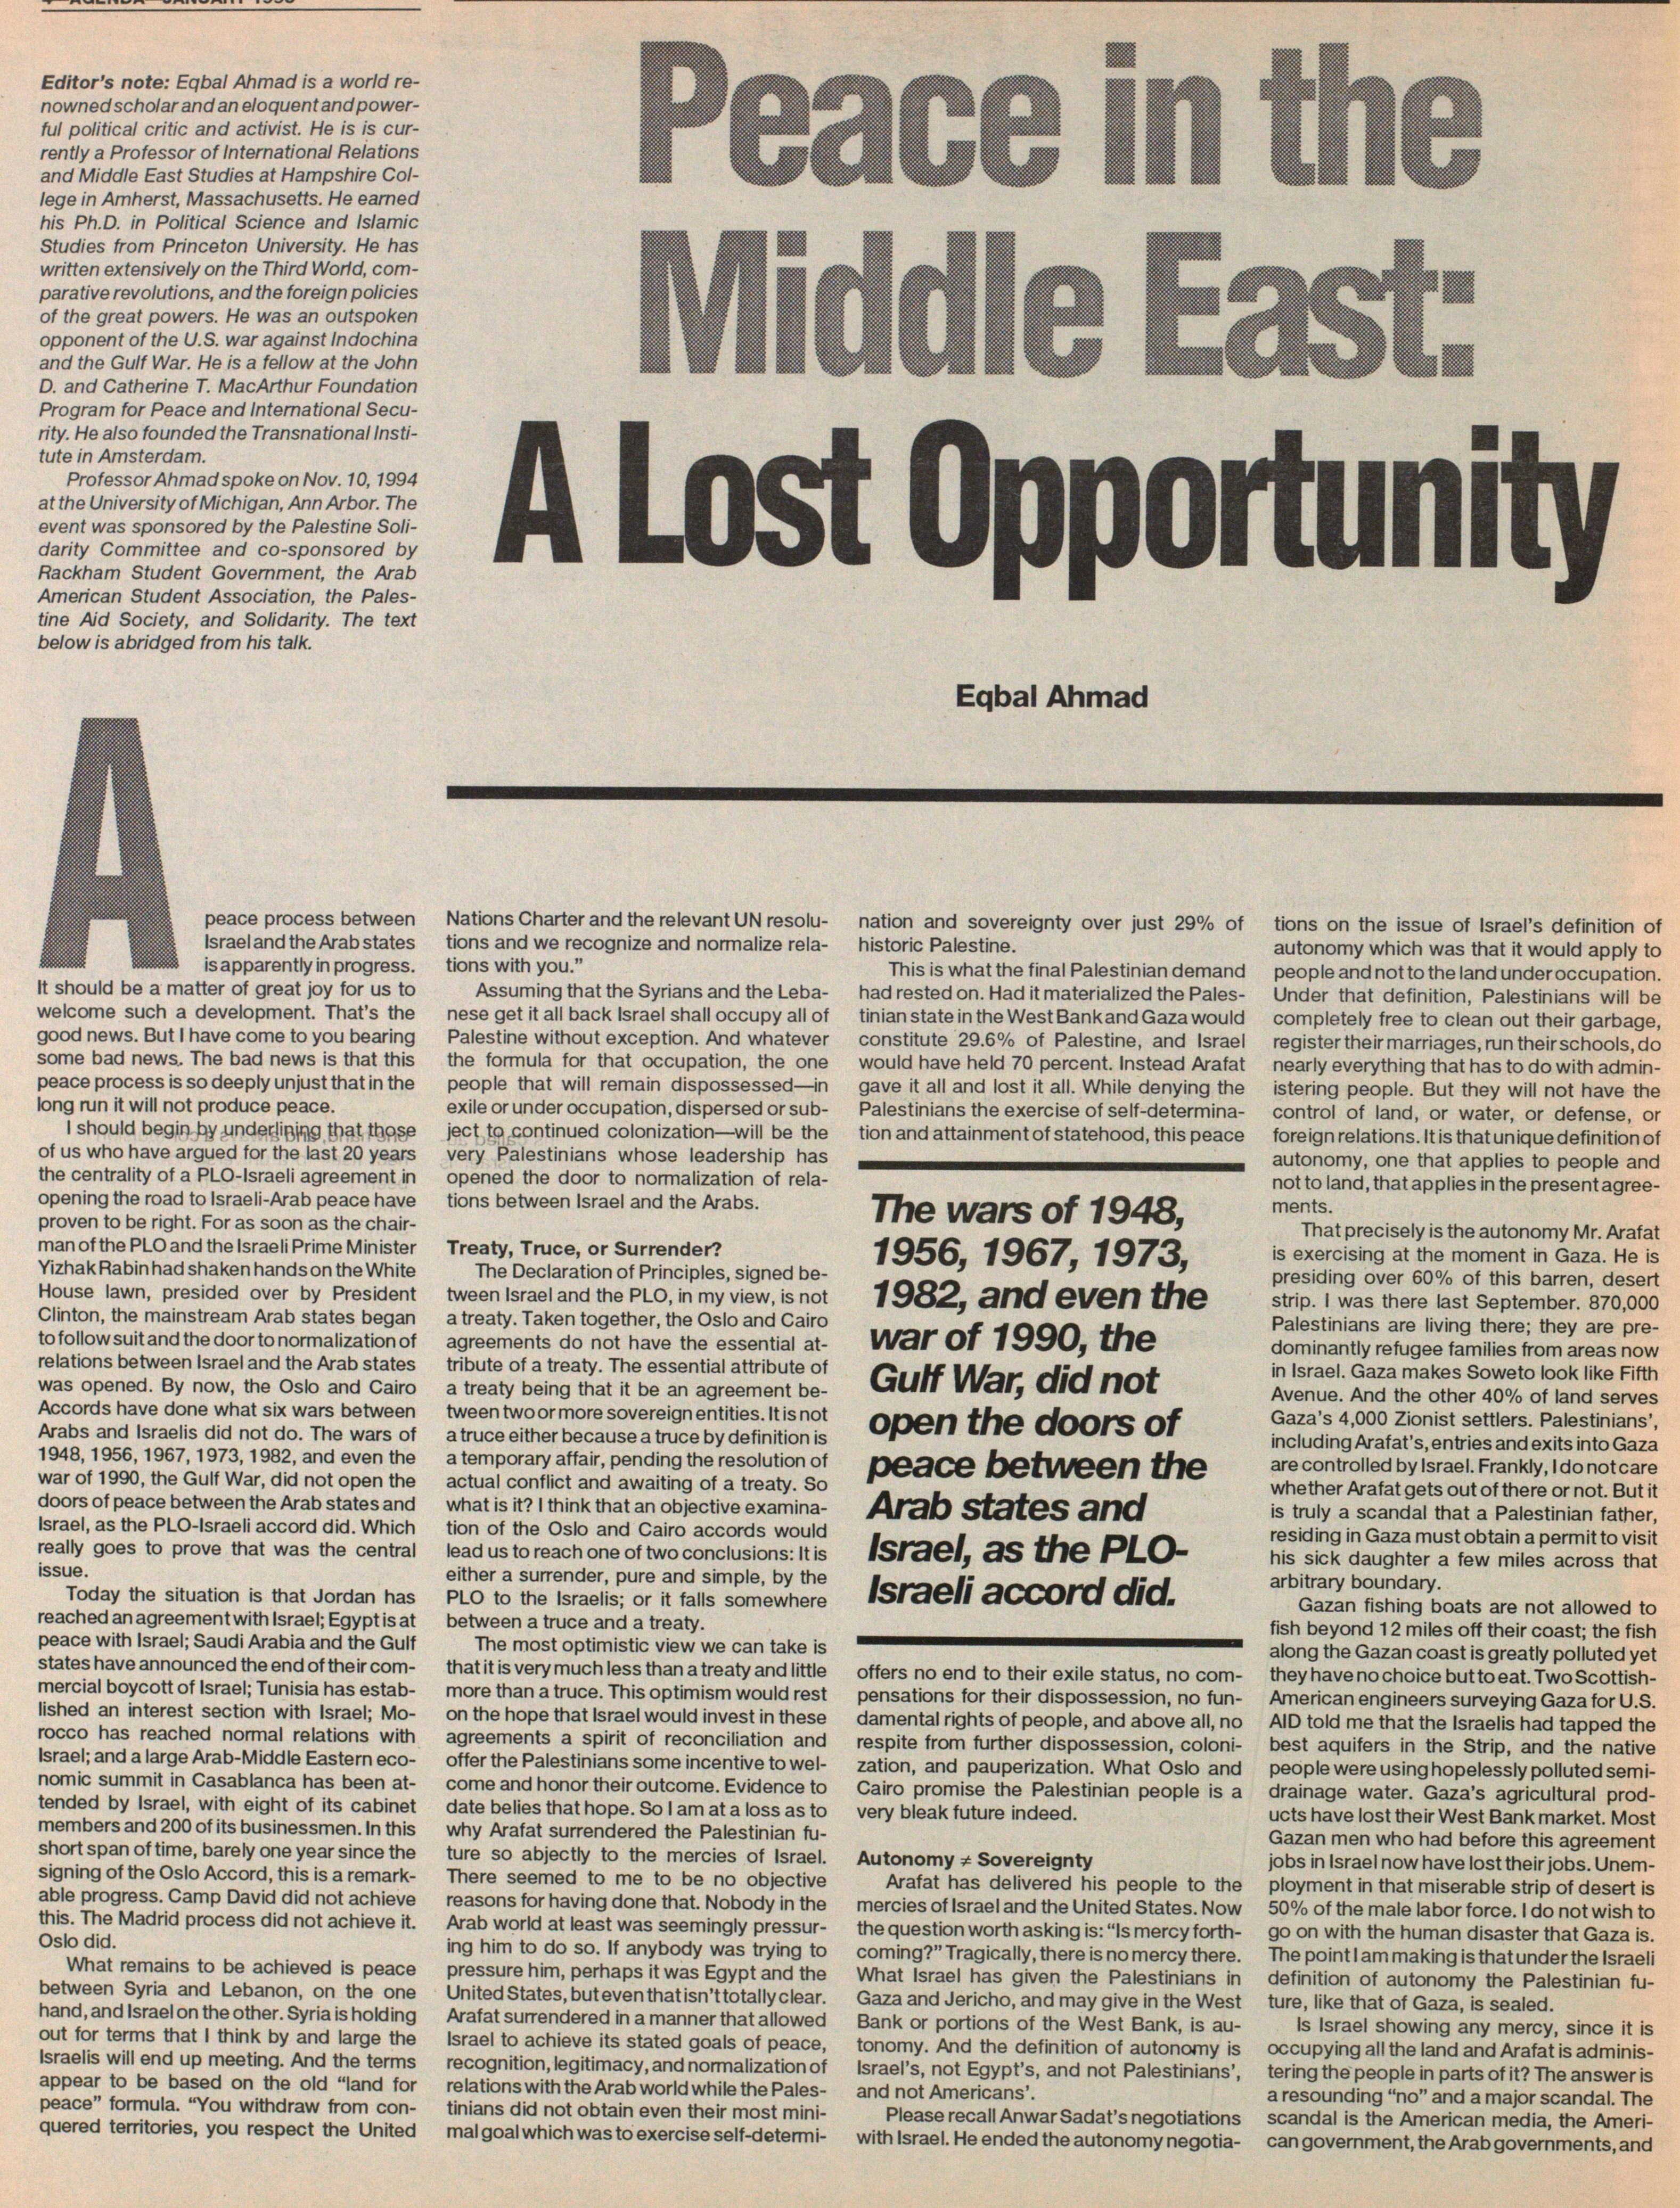 Peace In The Middle East: A Lost Opportunity image